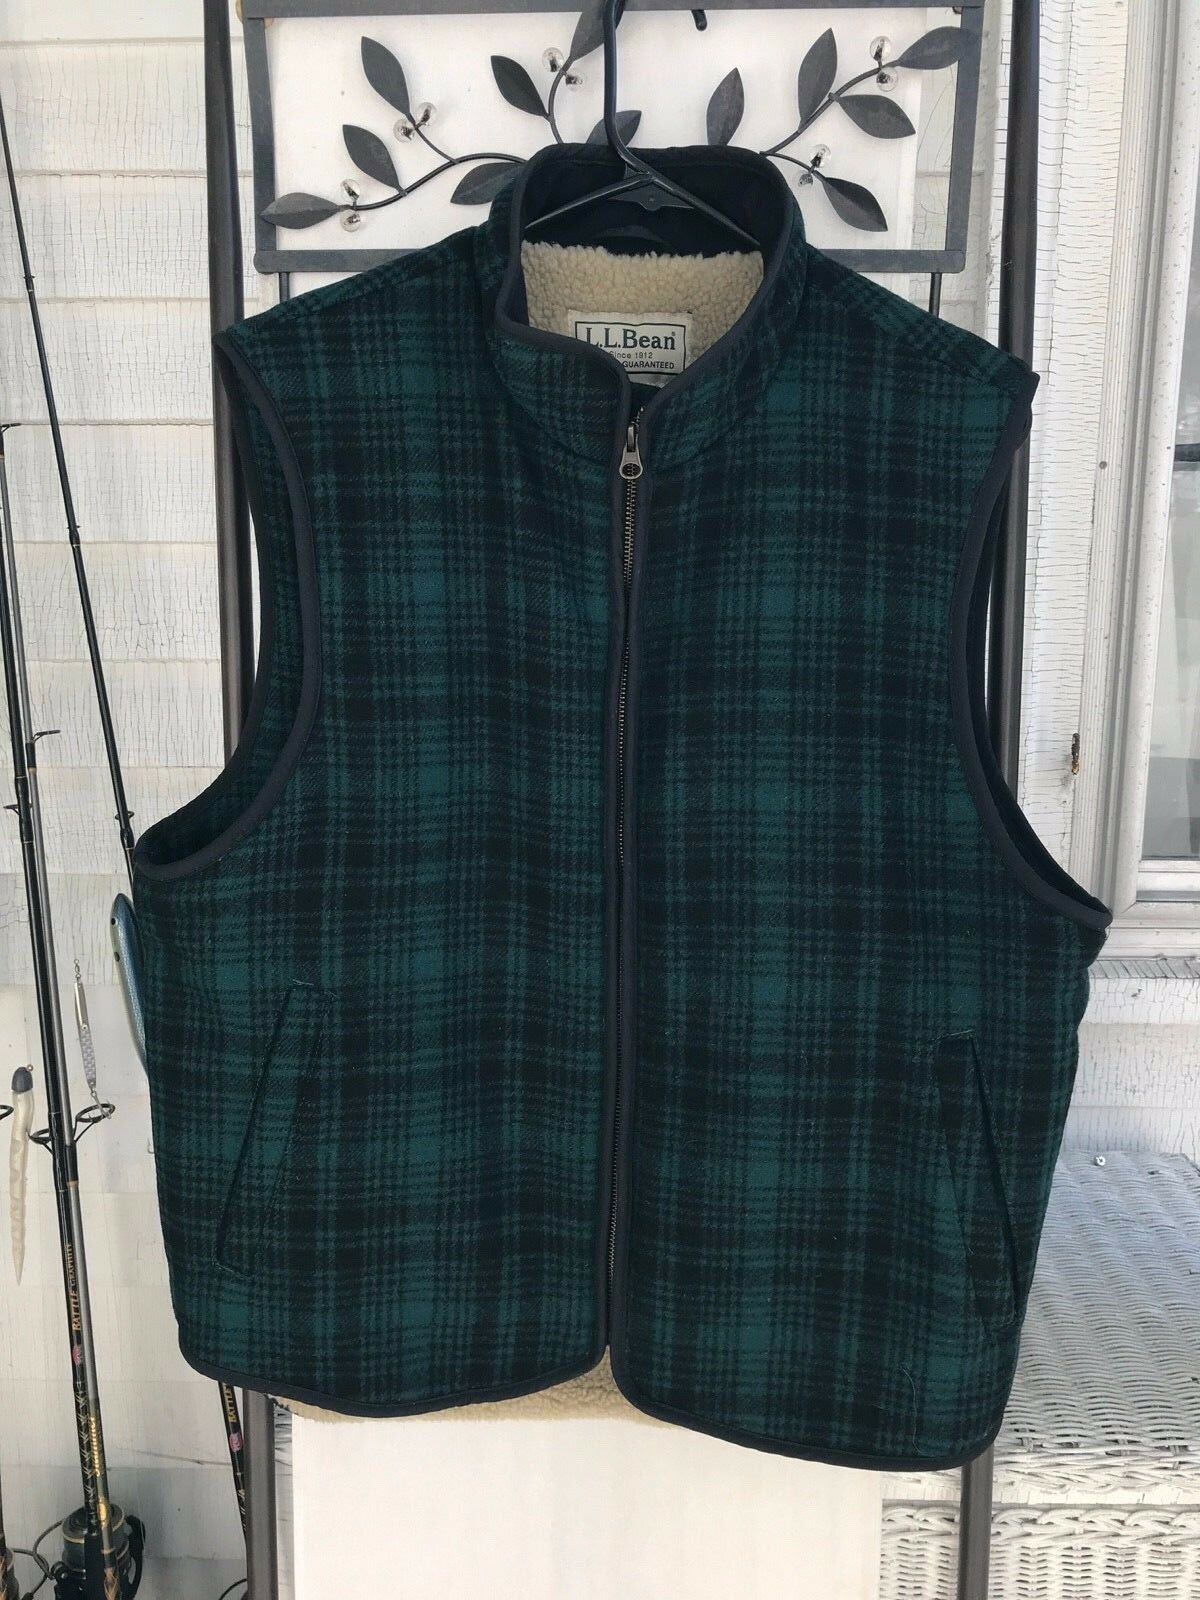 LL BEAN NAVY HUNTER GREEN PLAID SHERPA LINED VEST MENS MEDIUM IMMACULATE